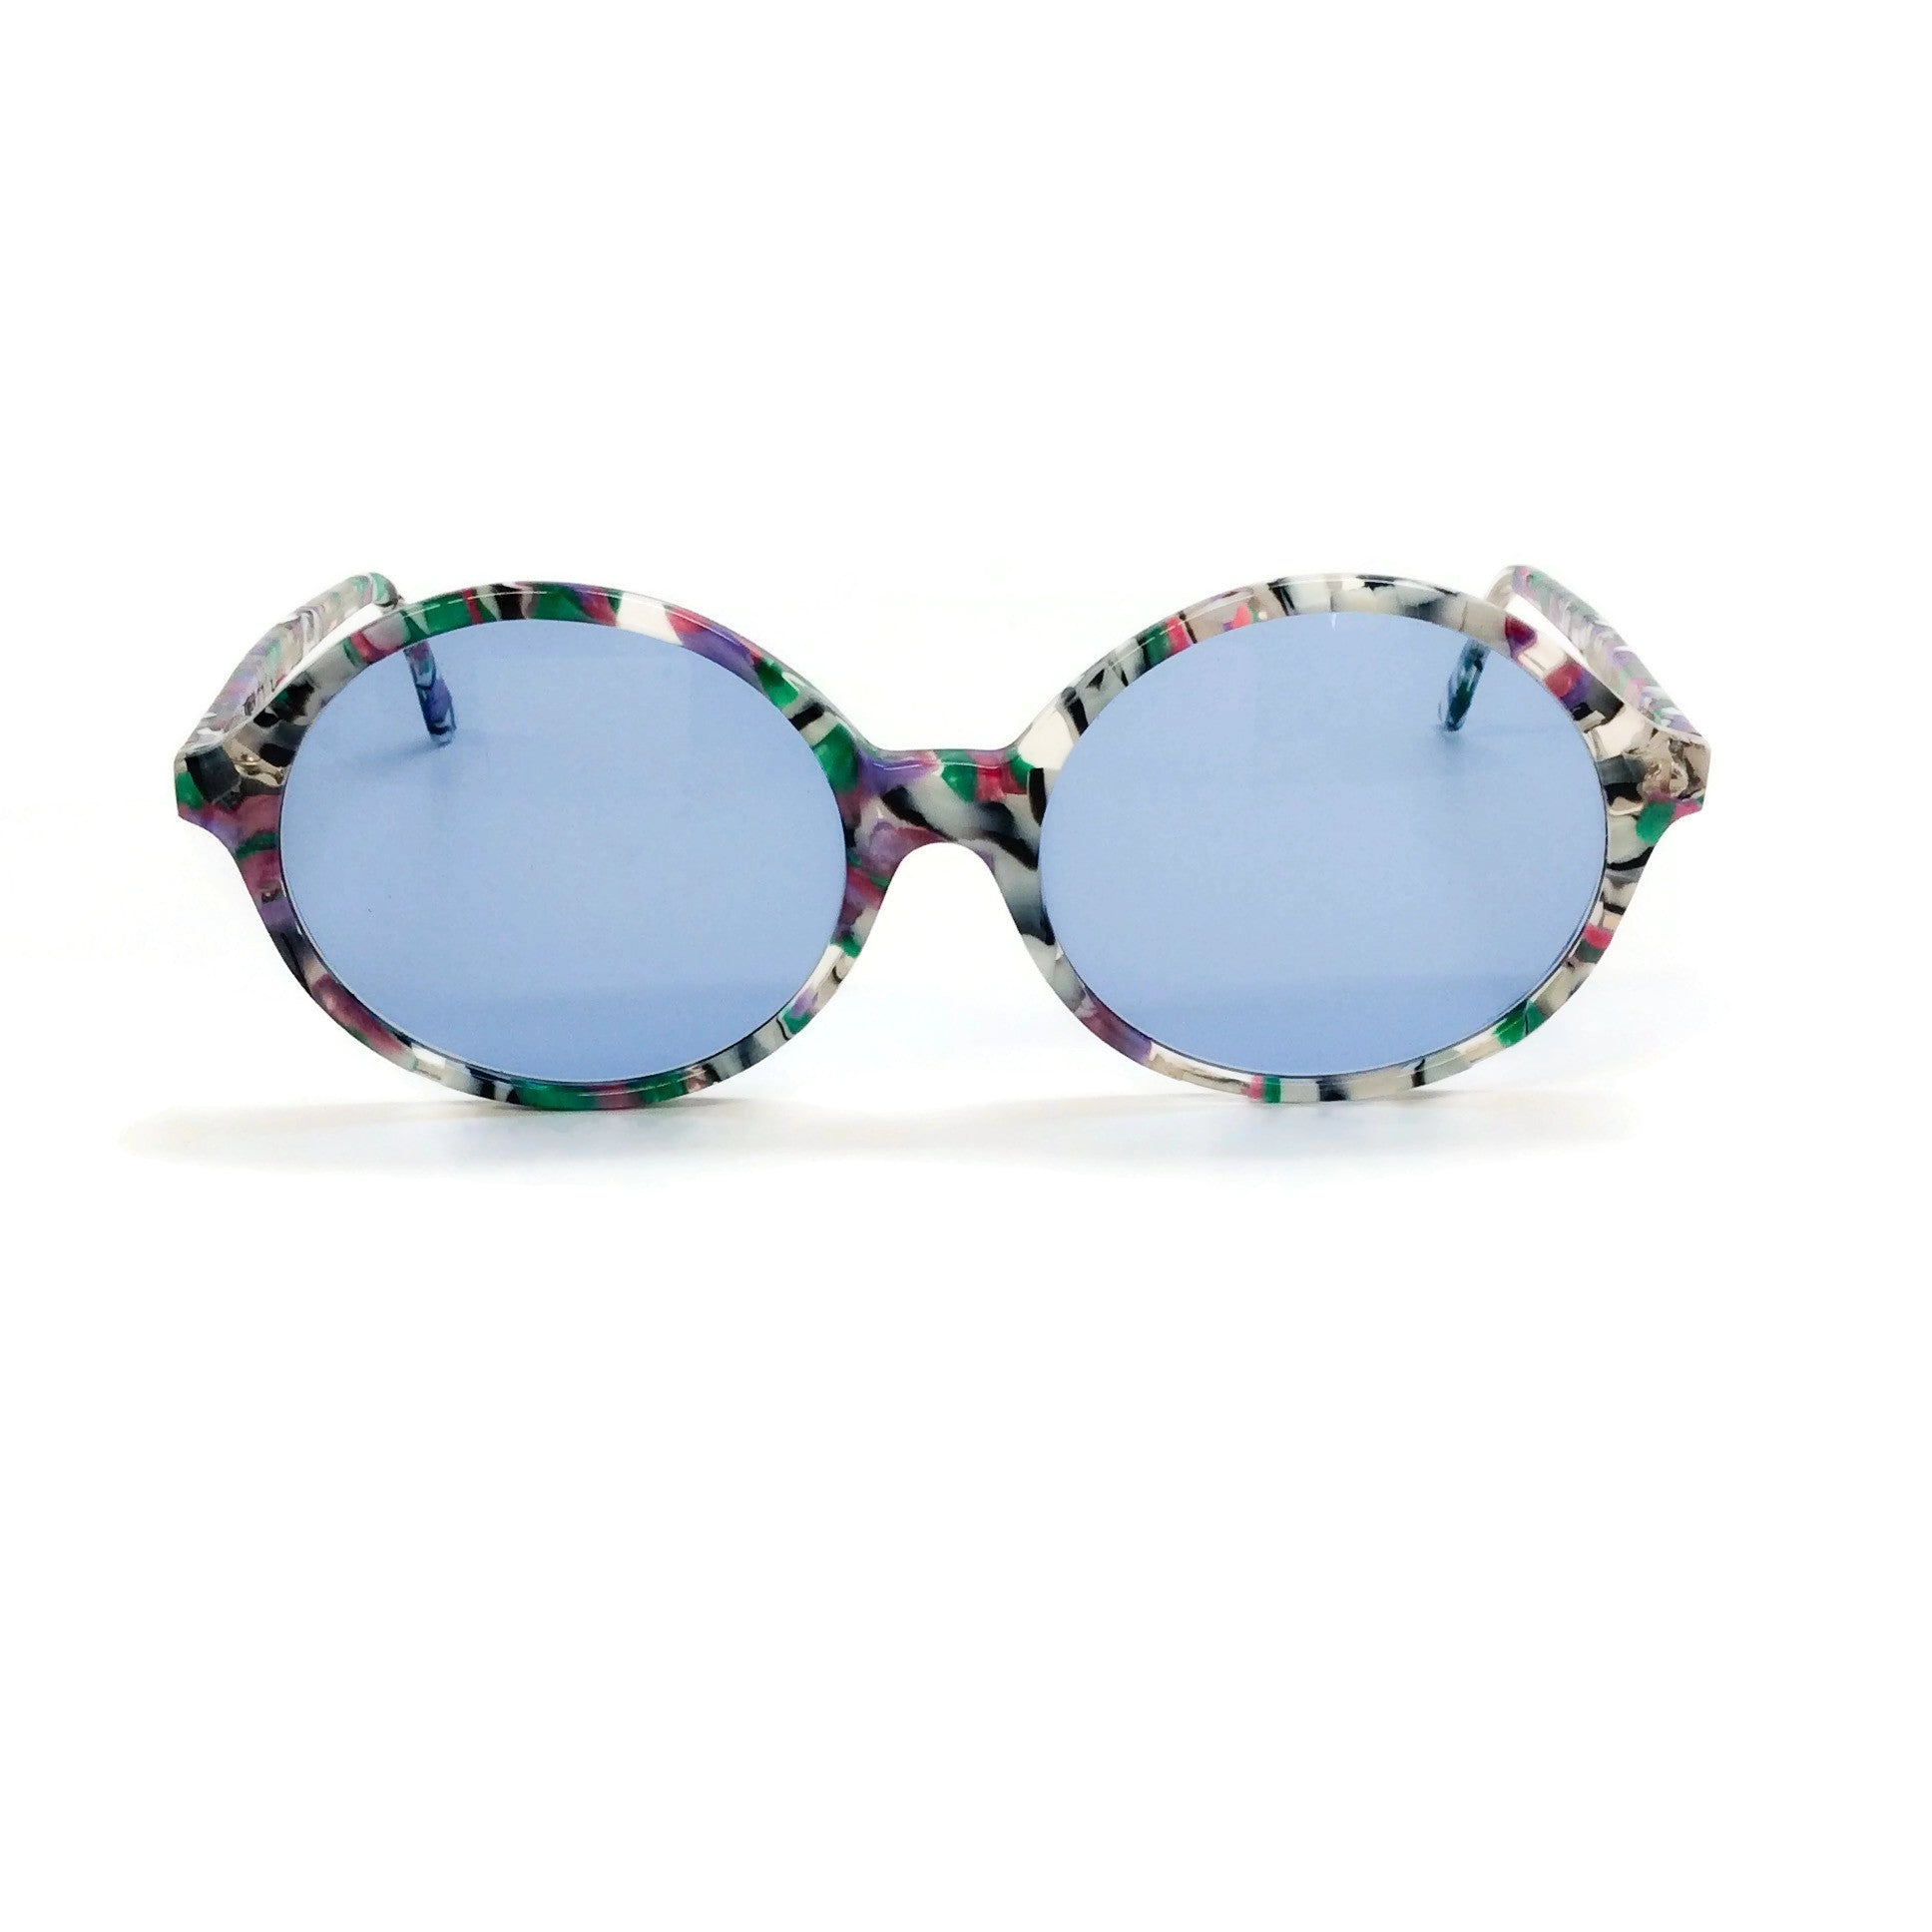 Friedrich's & Campbell Multicolor Round Frame Sunglasses